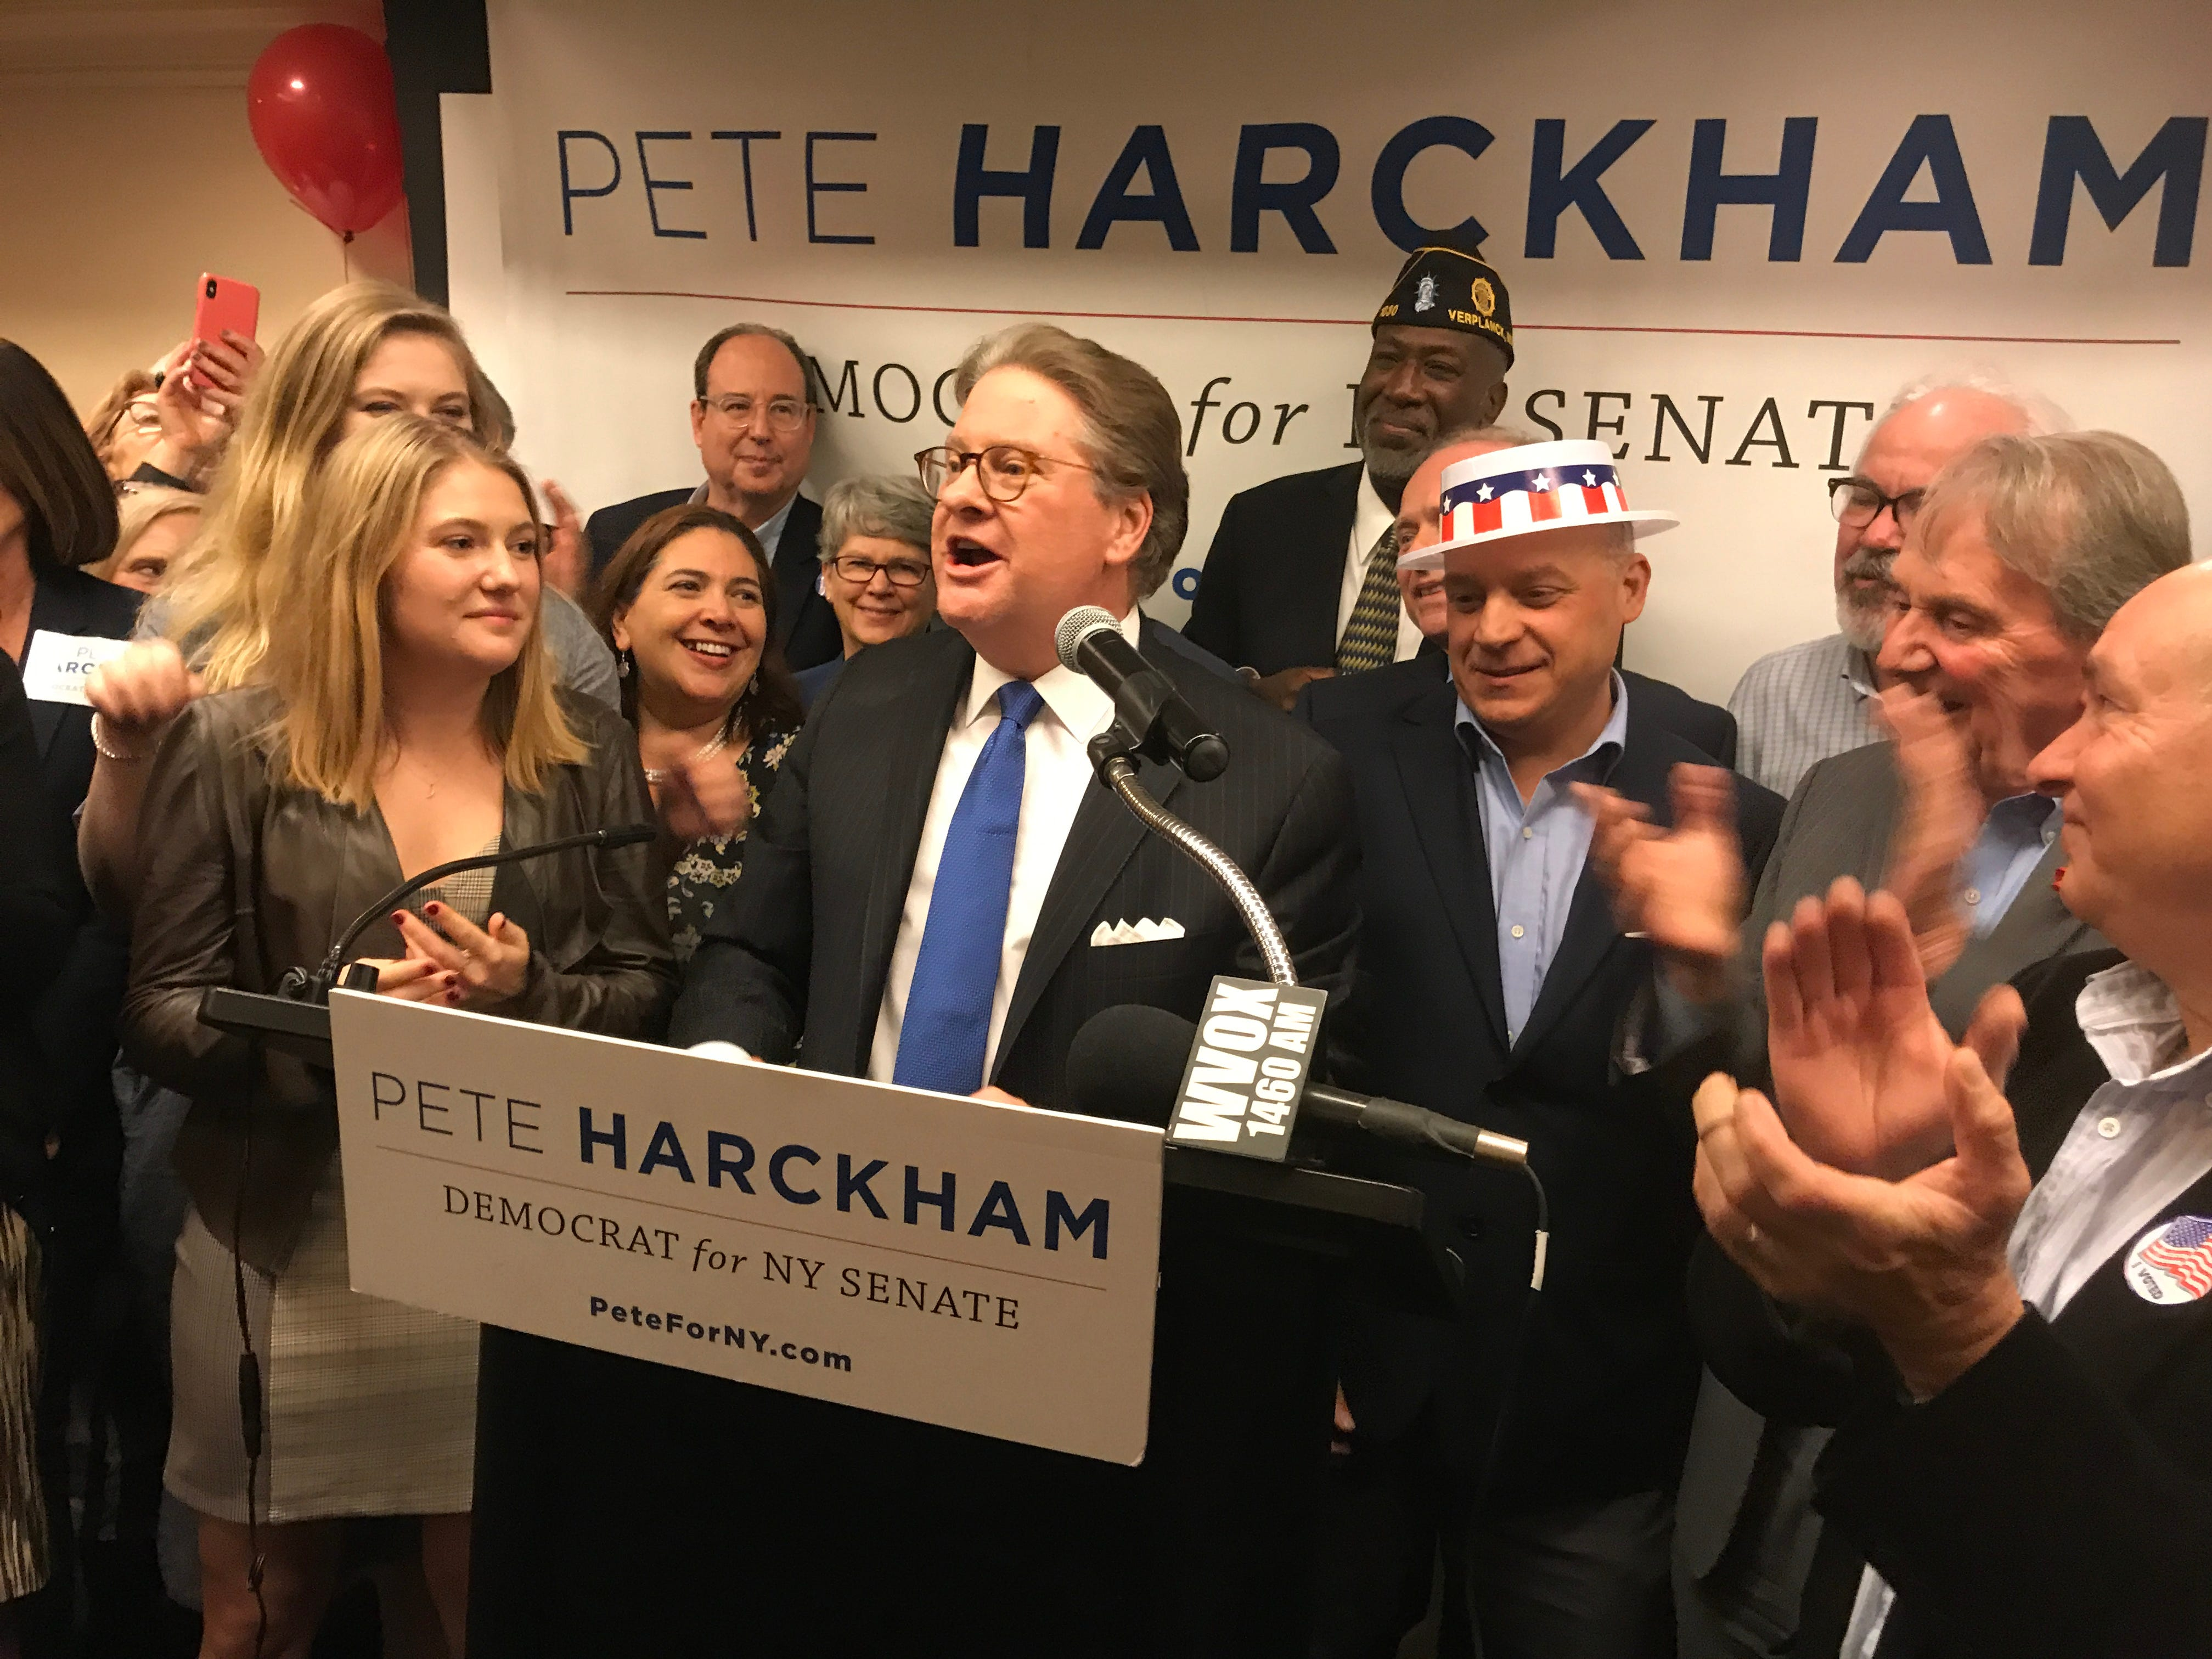 Pete Harckham gives his victory speech the Mountt Kisco Holiday Inn.